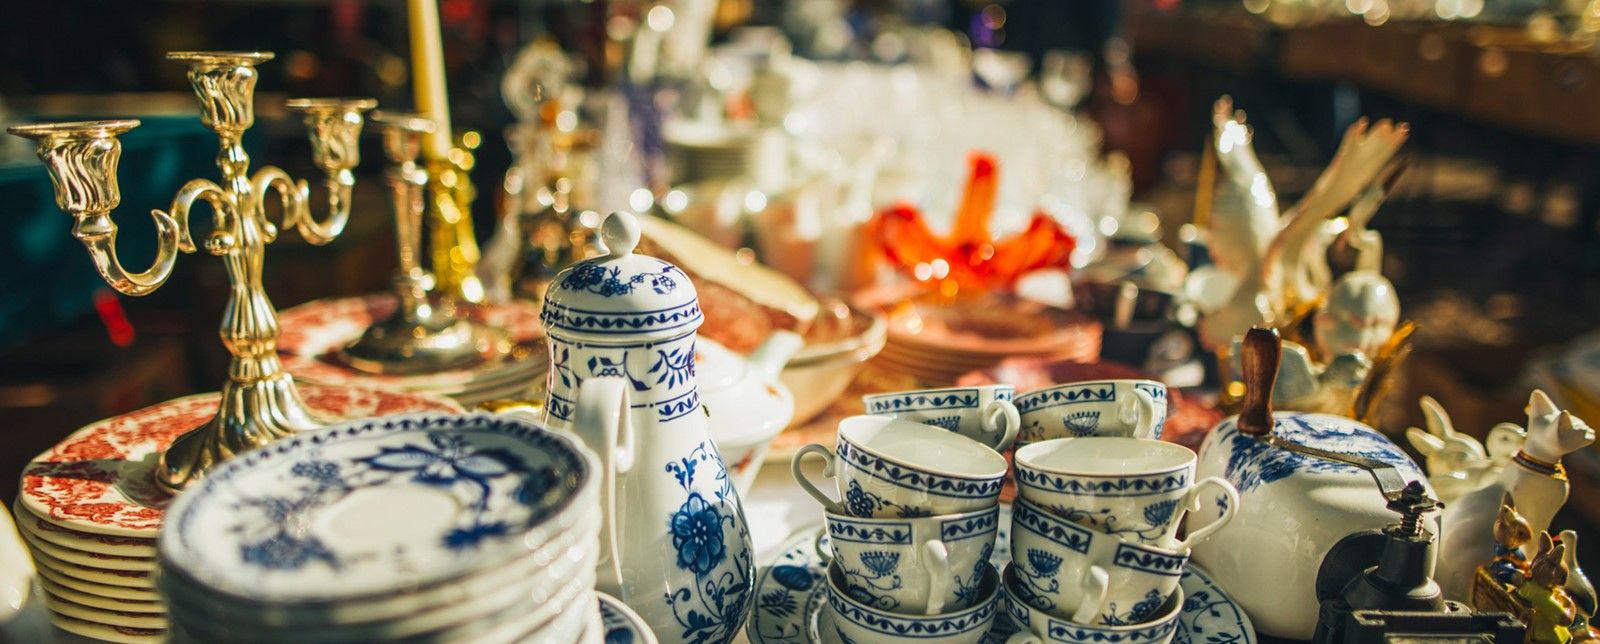 Ceramic cups and teapots at a flea market